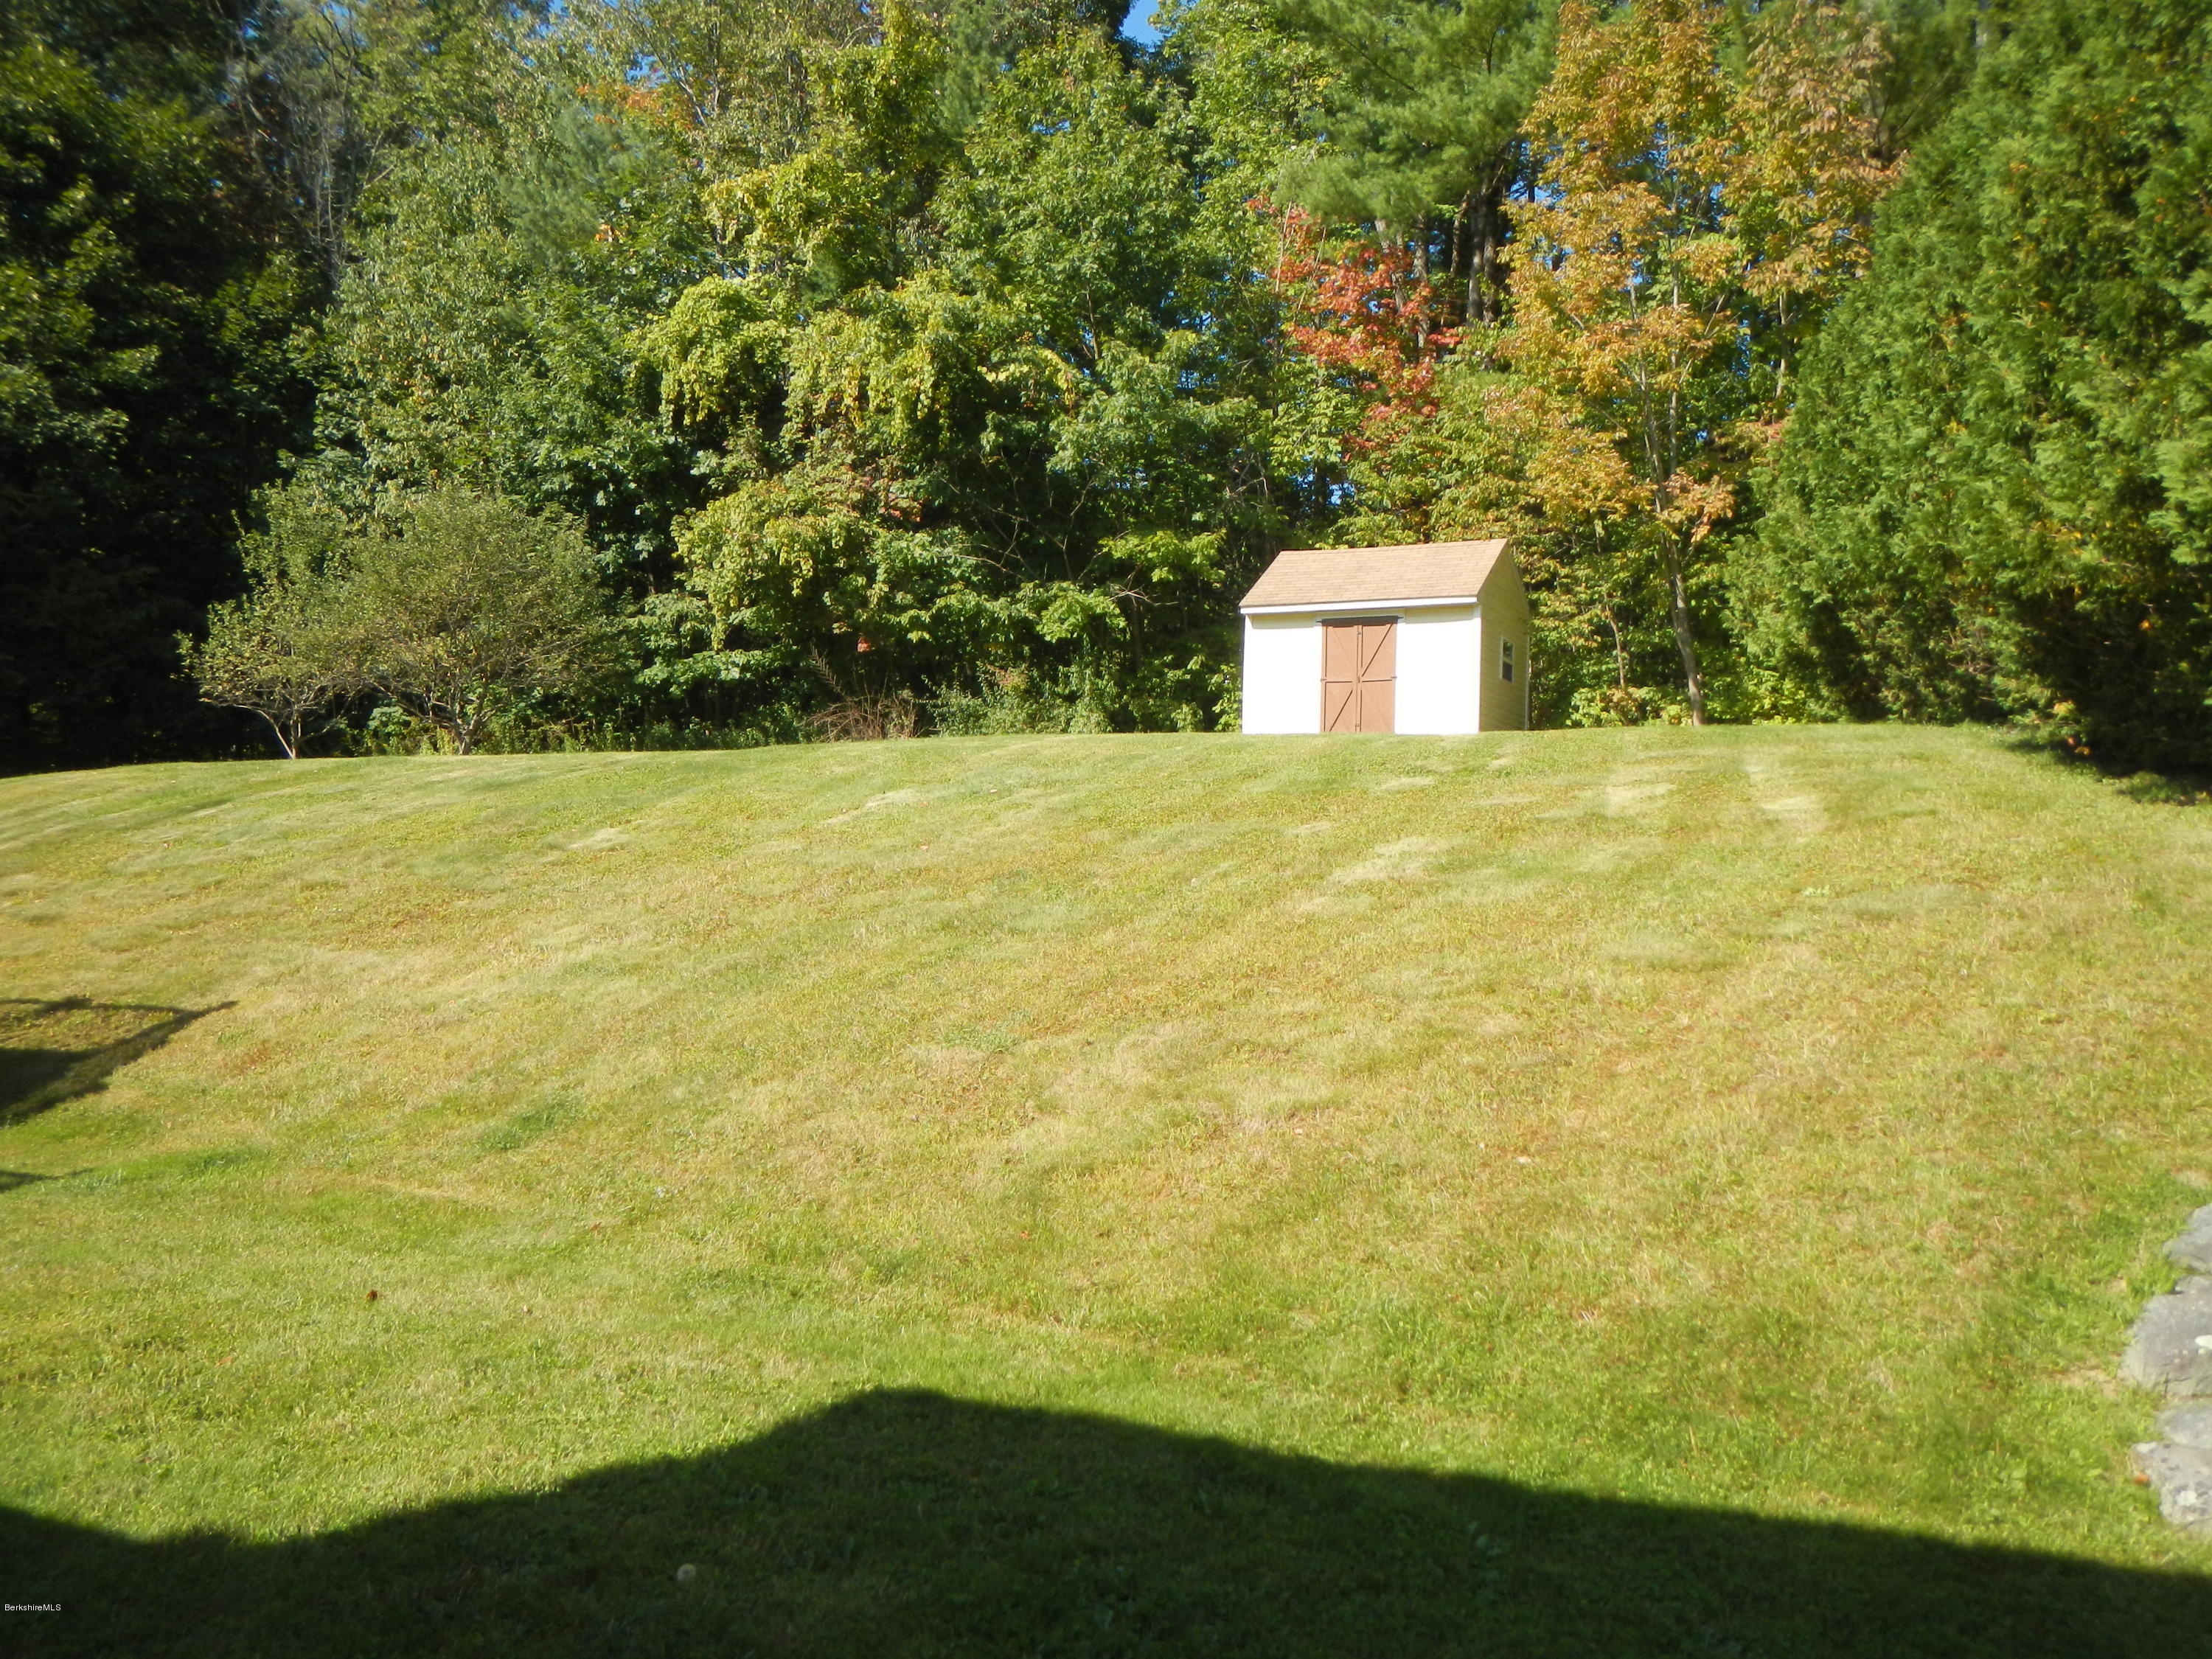 Back yard with shed.